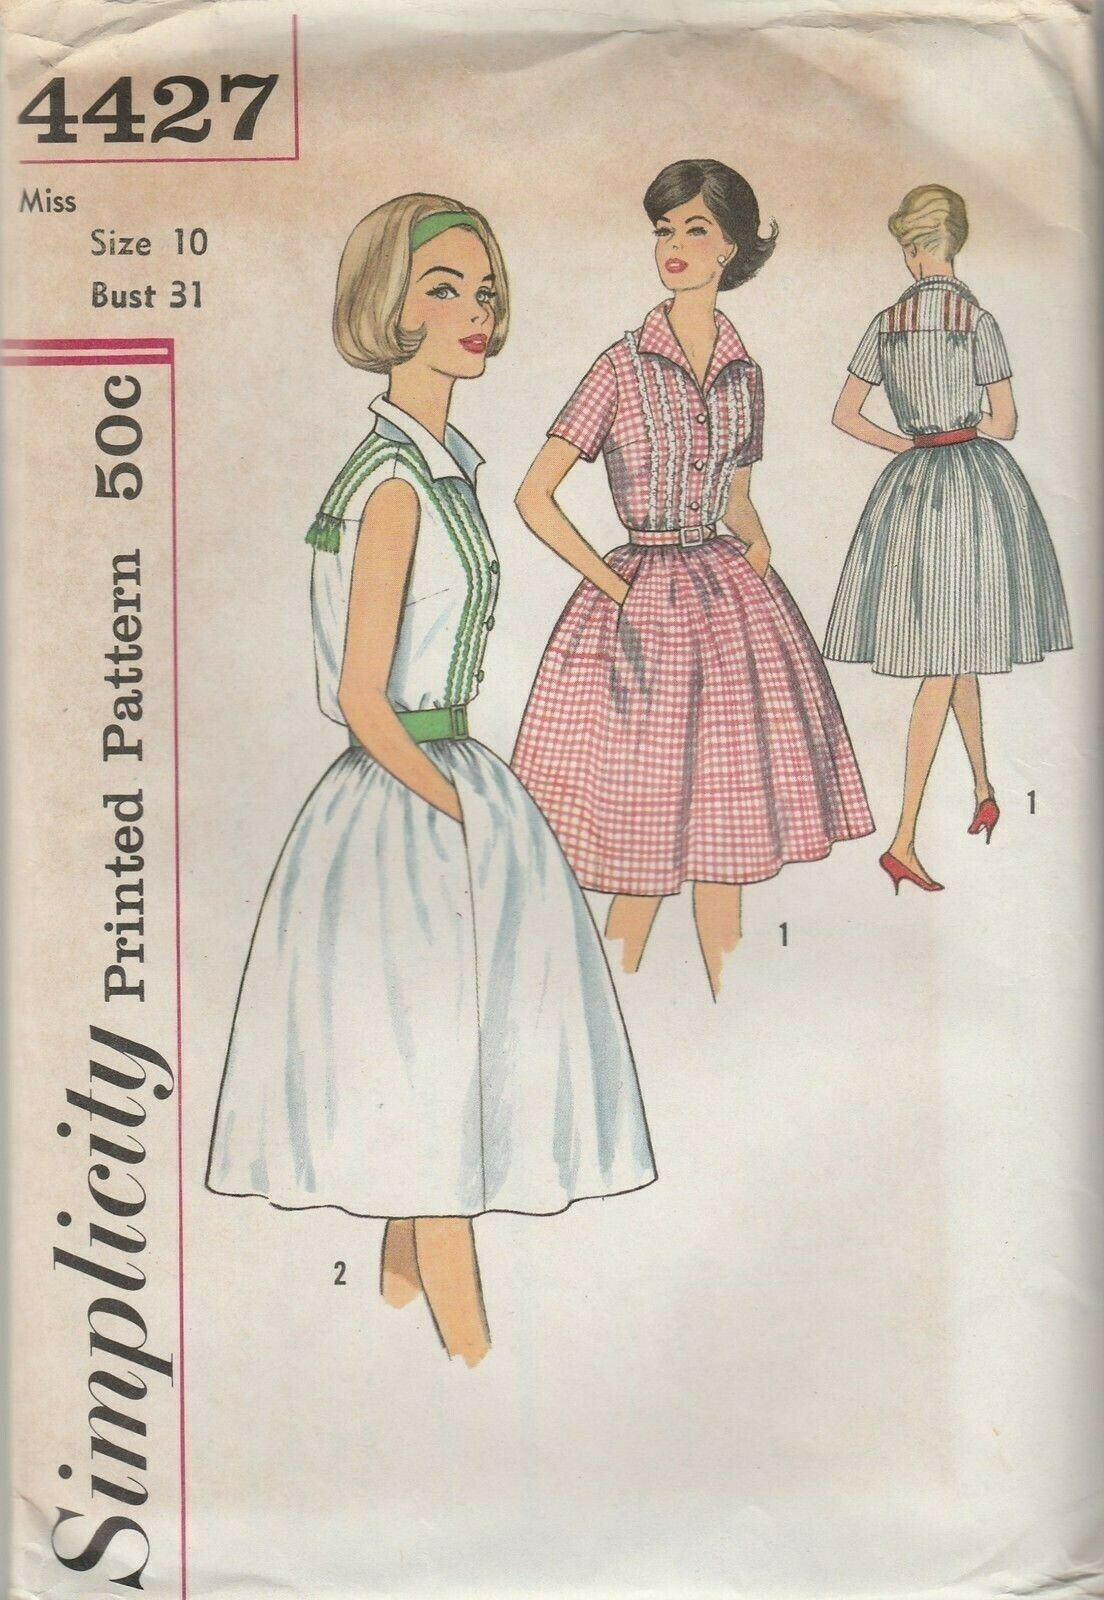 Primary image for Vintage Sewing Pattern Simplicity 4427 Misses One Piece Dress 1960s Size 10